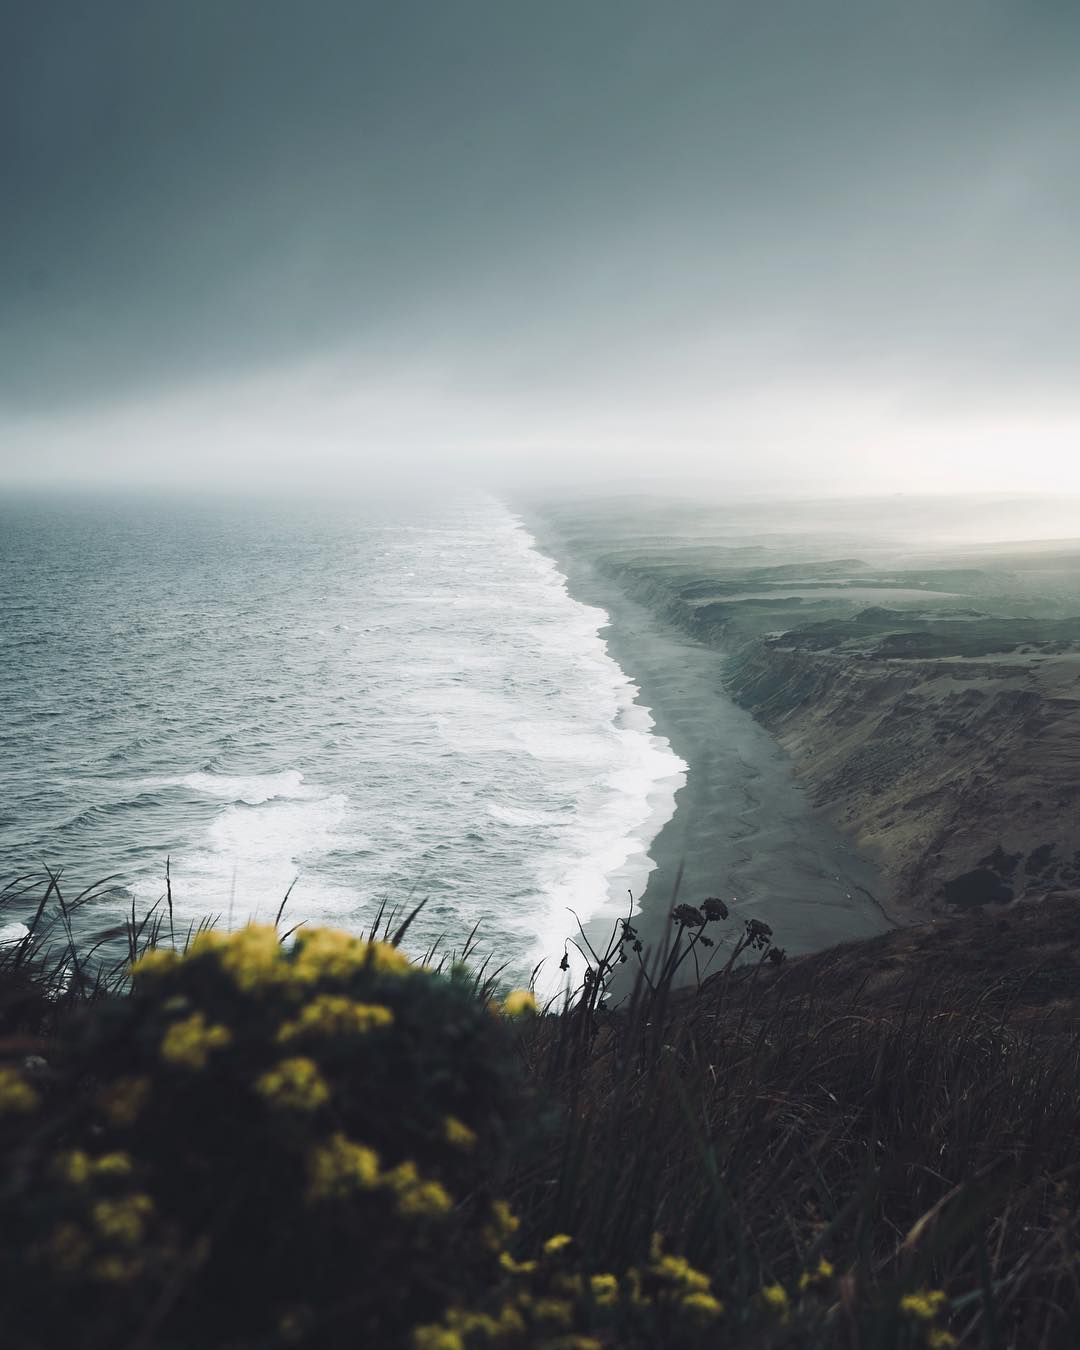 Gorgeous Travel Landscape Photography by Joey Genochio #photography